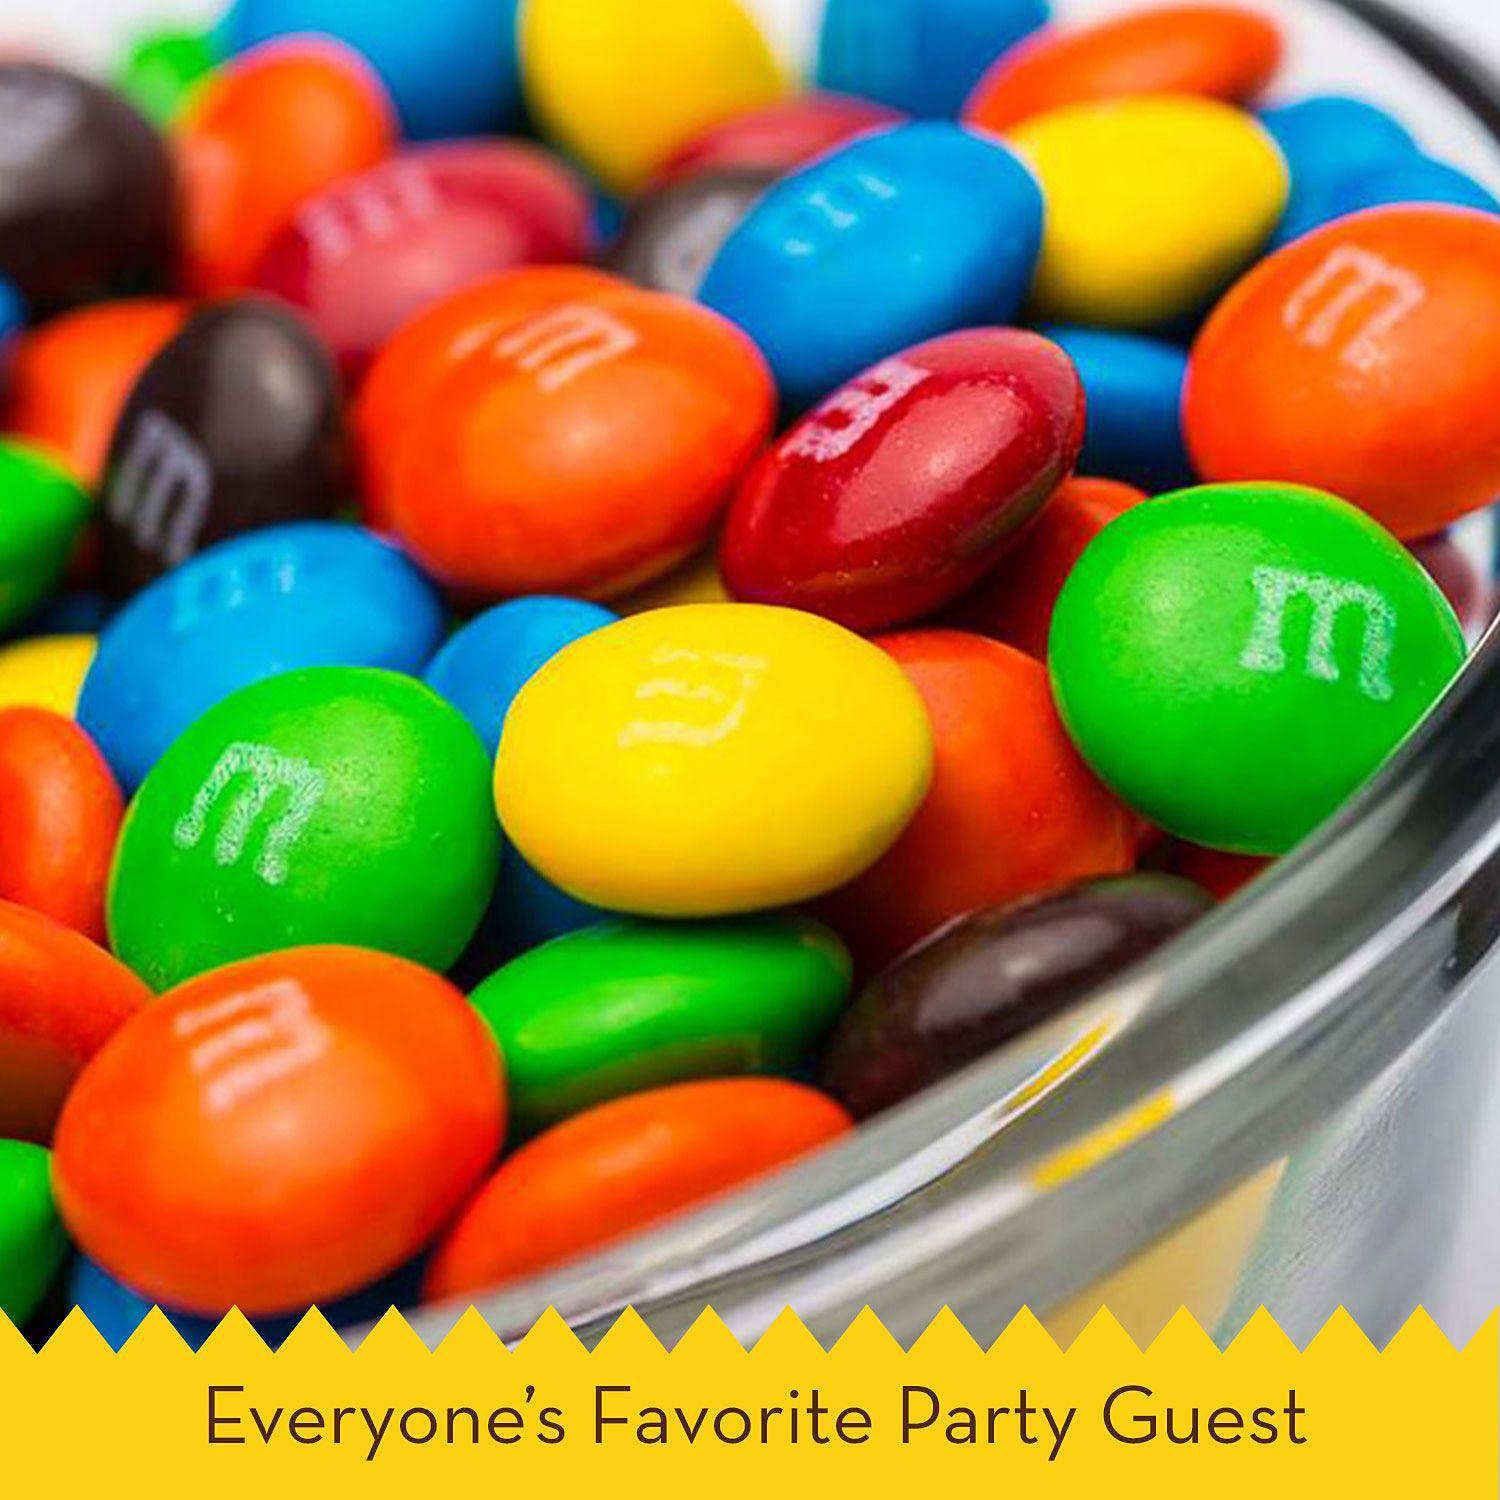 M&M's Chocolate Candy, Pantry Size Jar, 62oz